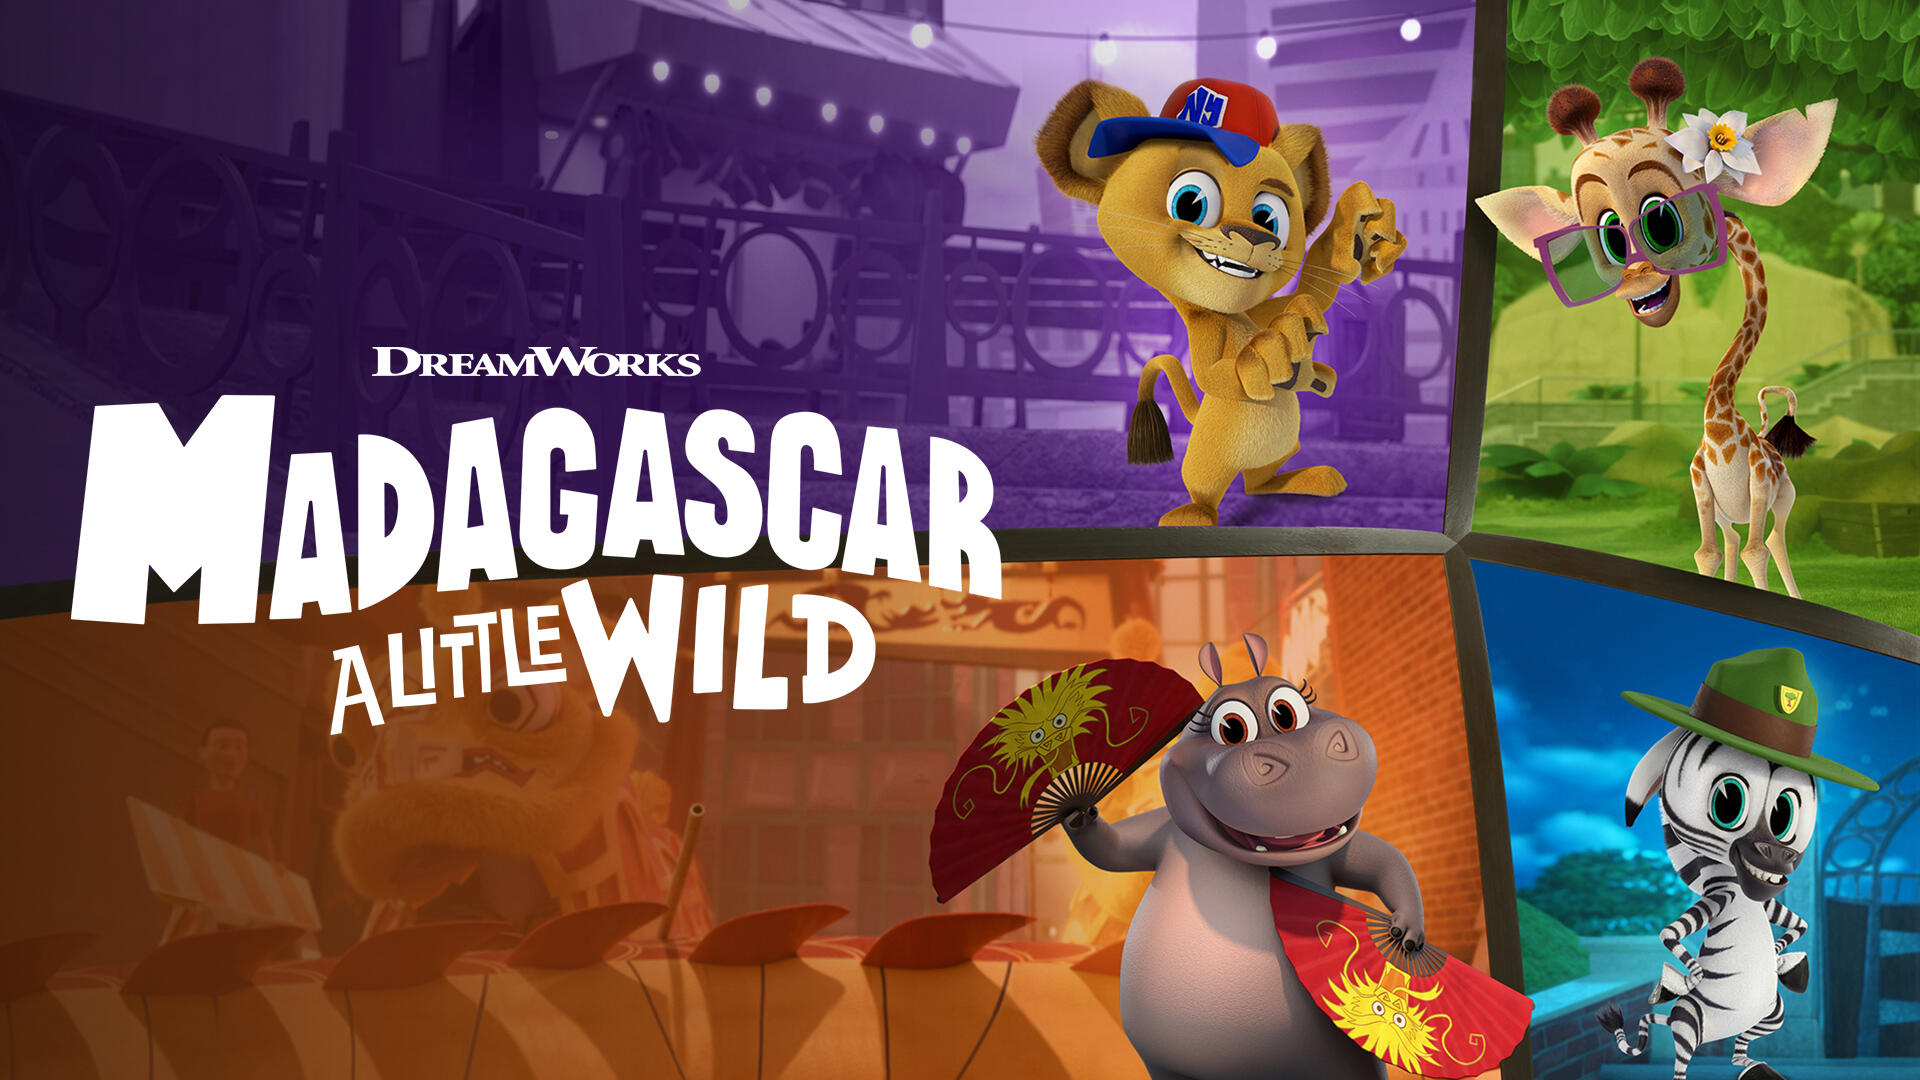 Madagascar: A Little Wild -- Fearless pals Alex, Marty, Melman and Gloria are back with even bigger adventures in their concrete jungle of New York City. Melman loses his first tooth, Gloria plans a flashy production for a shy hermit crab with a secret talent, and a snowstorm hits the city and blocks Kate from the habitat. (Courtesy of DreamWorks)